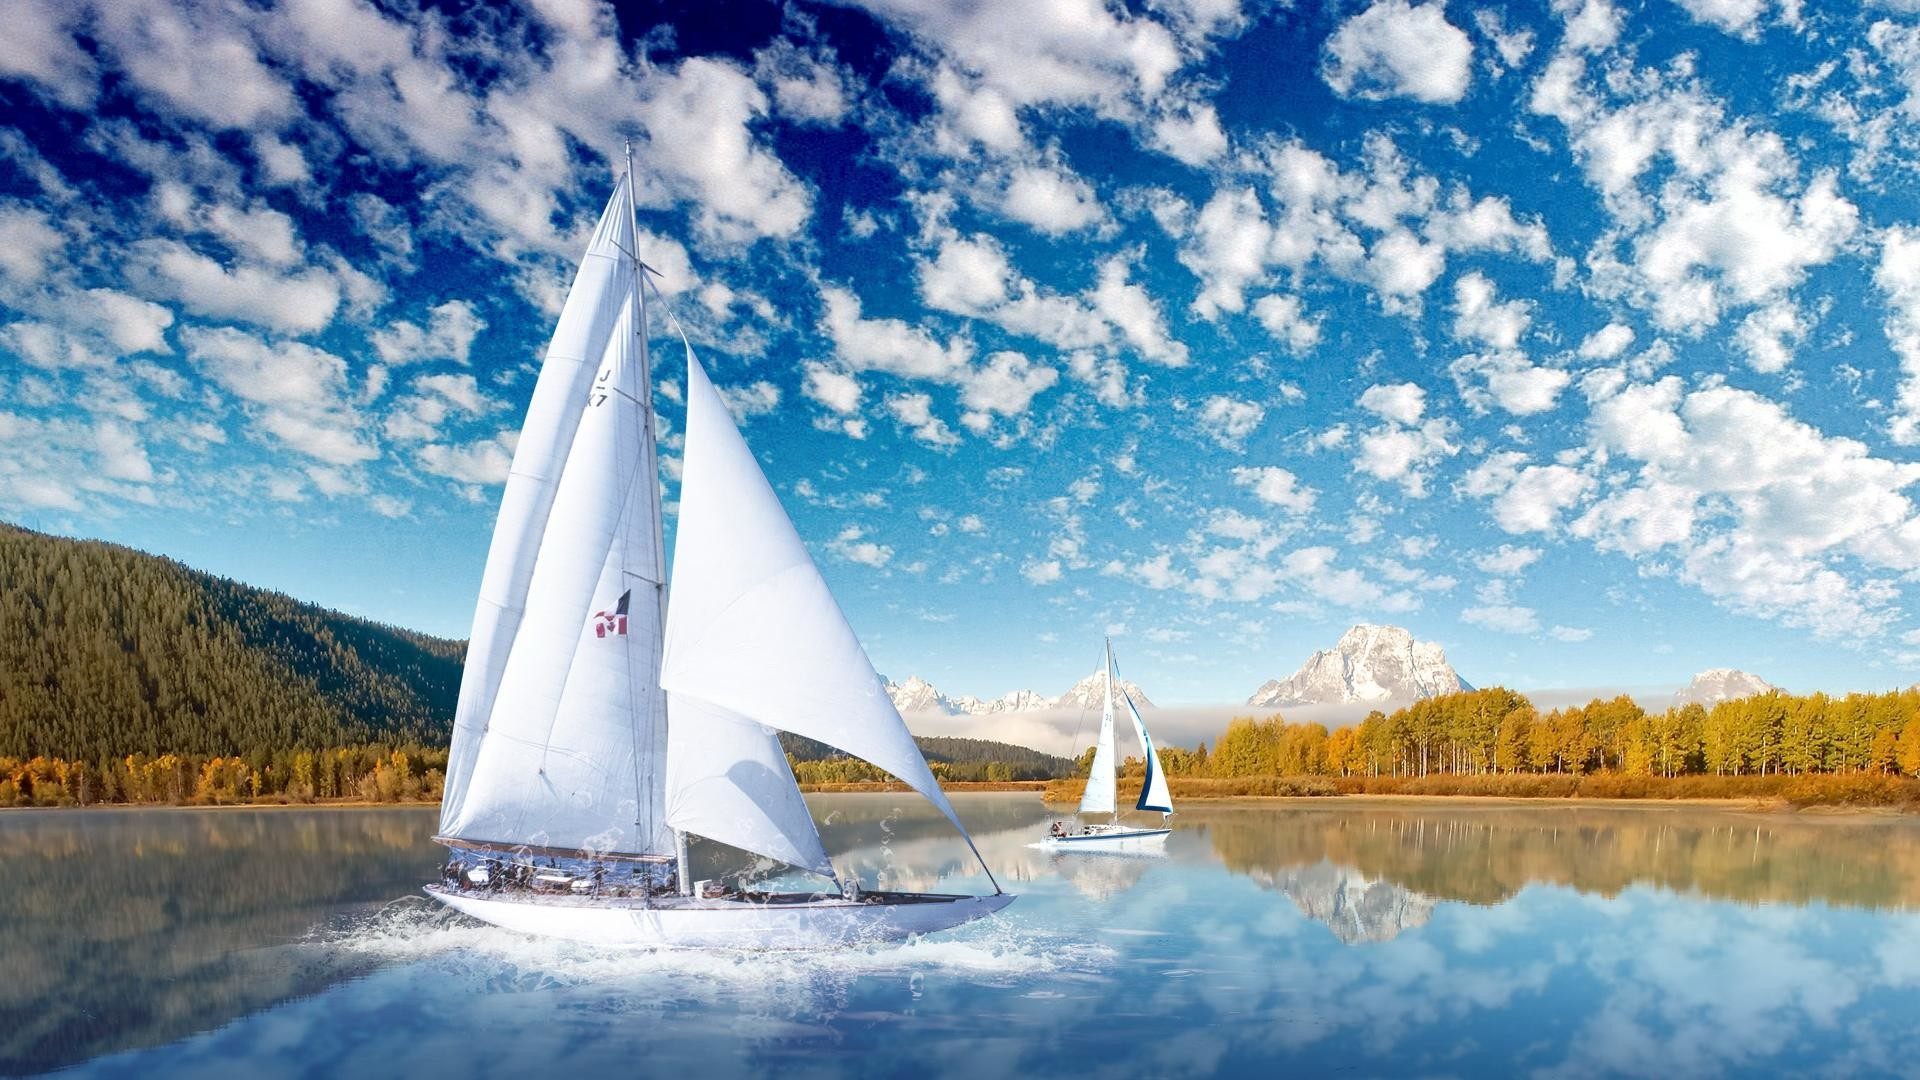 high definition Lake and sailing scenic backgrounds wide  wallpapers:1280×800,1440×900,1680×1050